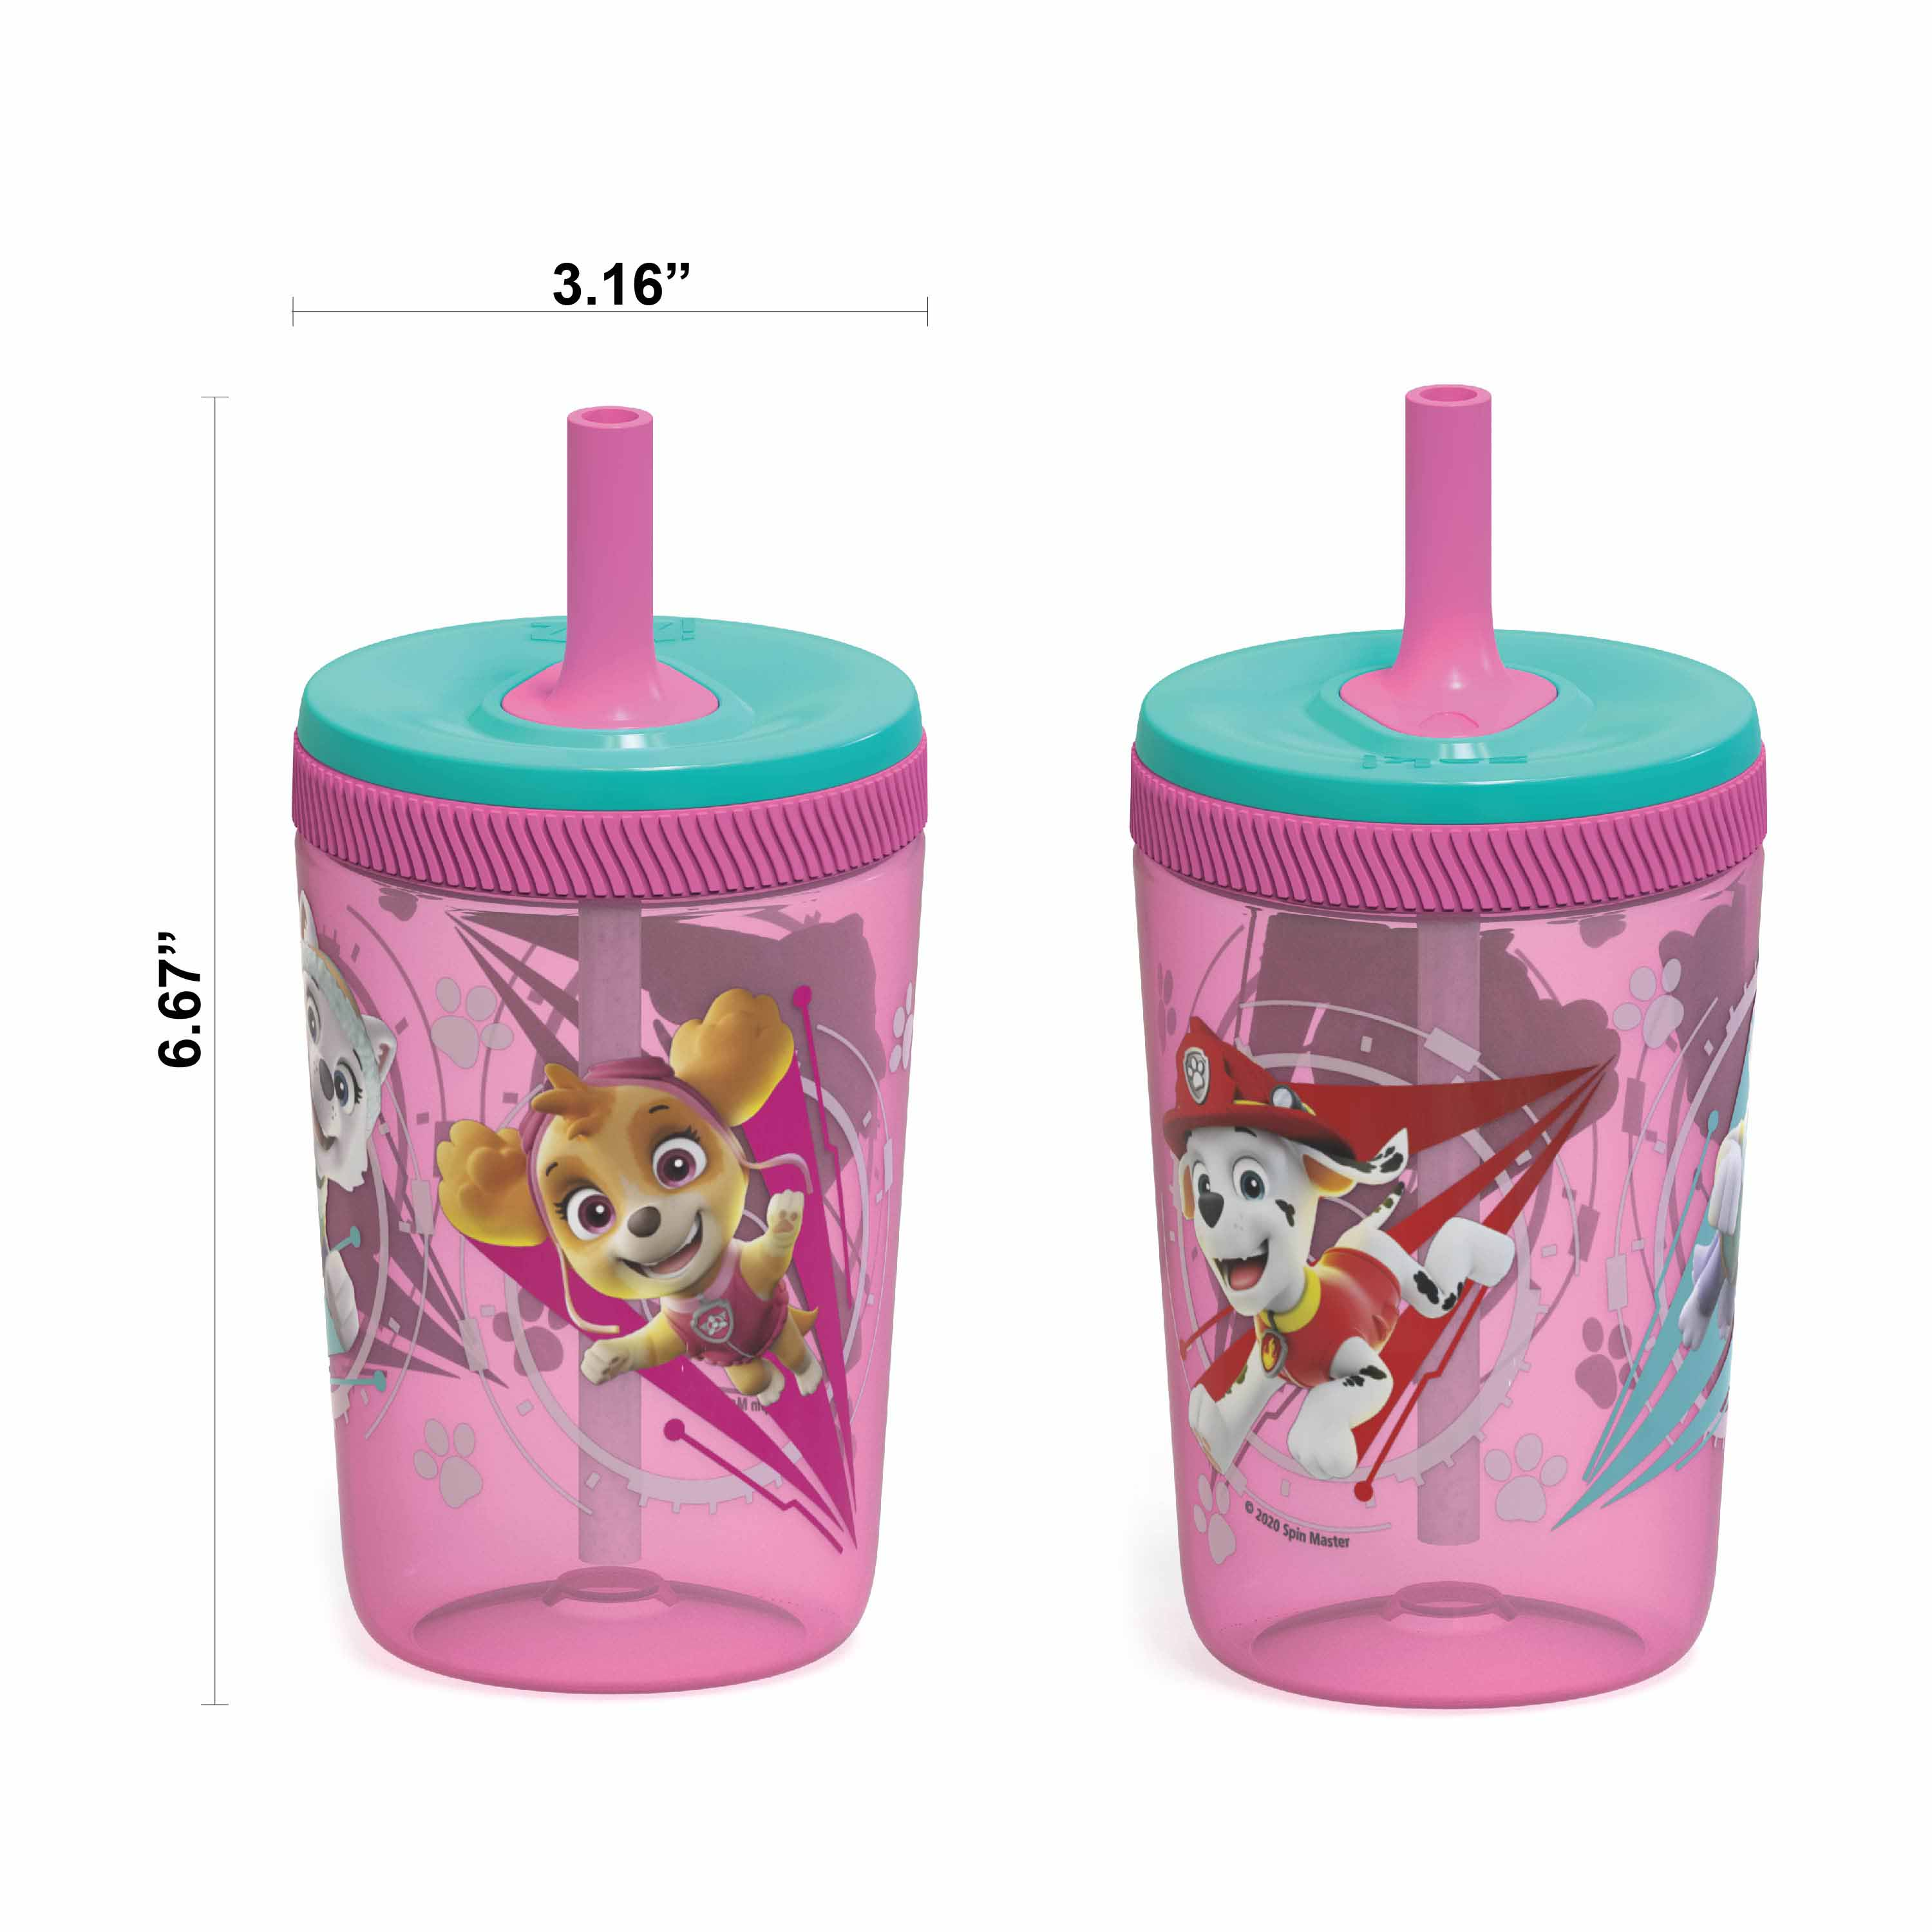 Paw Patrol 15  ounce Plastic Tumbler with Lid and Straw, Marshall and Skye, 2-piece set slideshow image 6